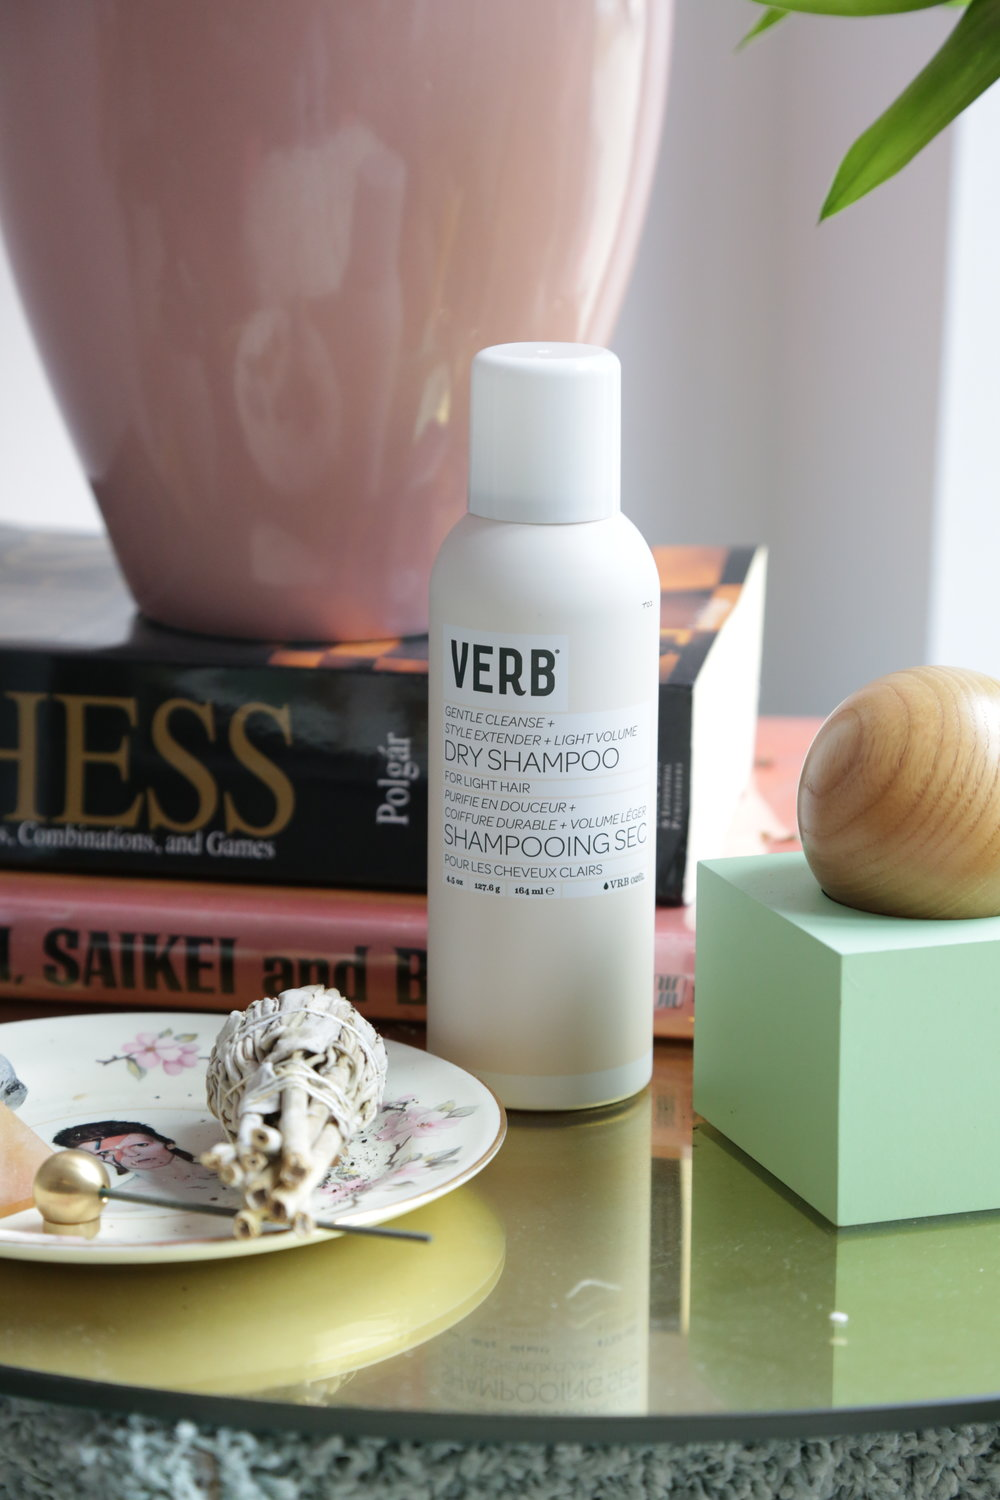 I'm huge supporter of Dry Shampoo. I only like to wash my hair every 2-3 days, so the Verb Dry Shampoo is truly my best friend. My boyfriend also likes to steal it! -